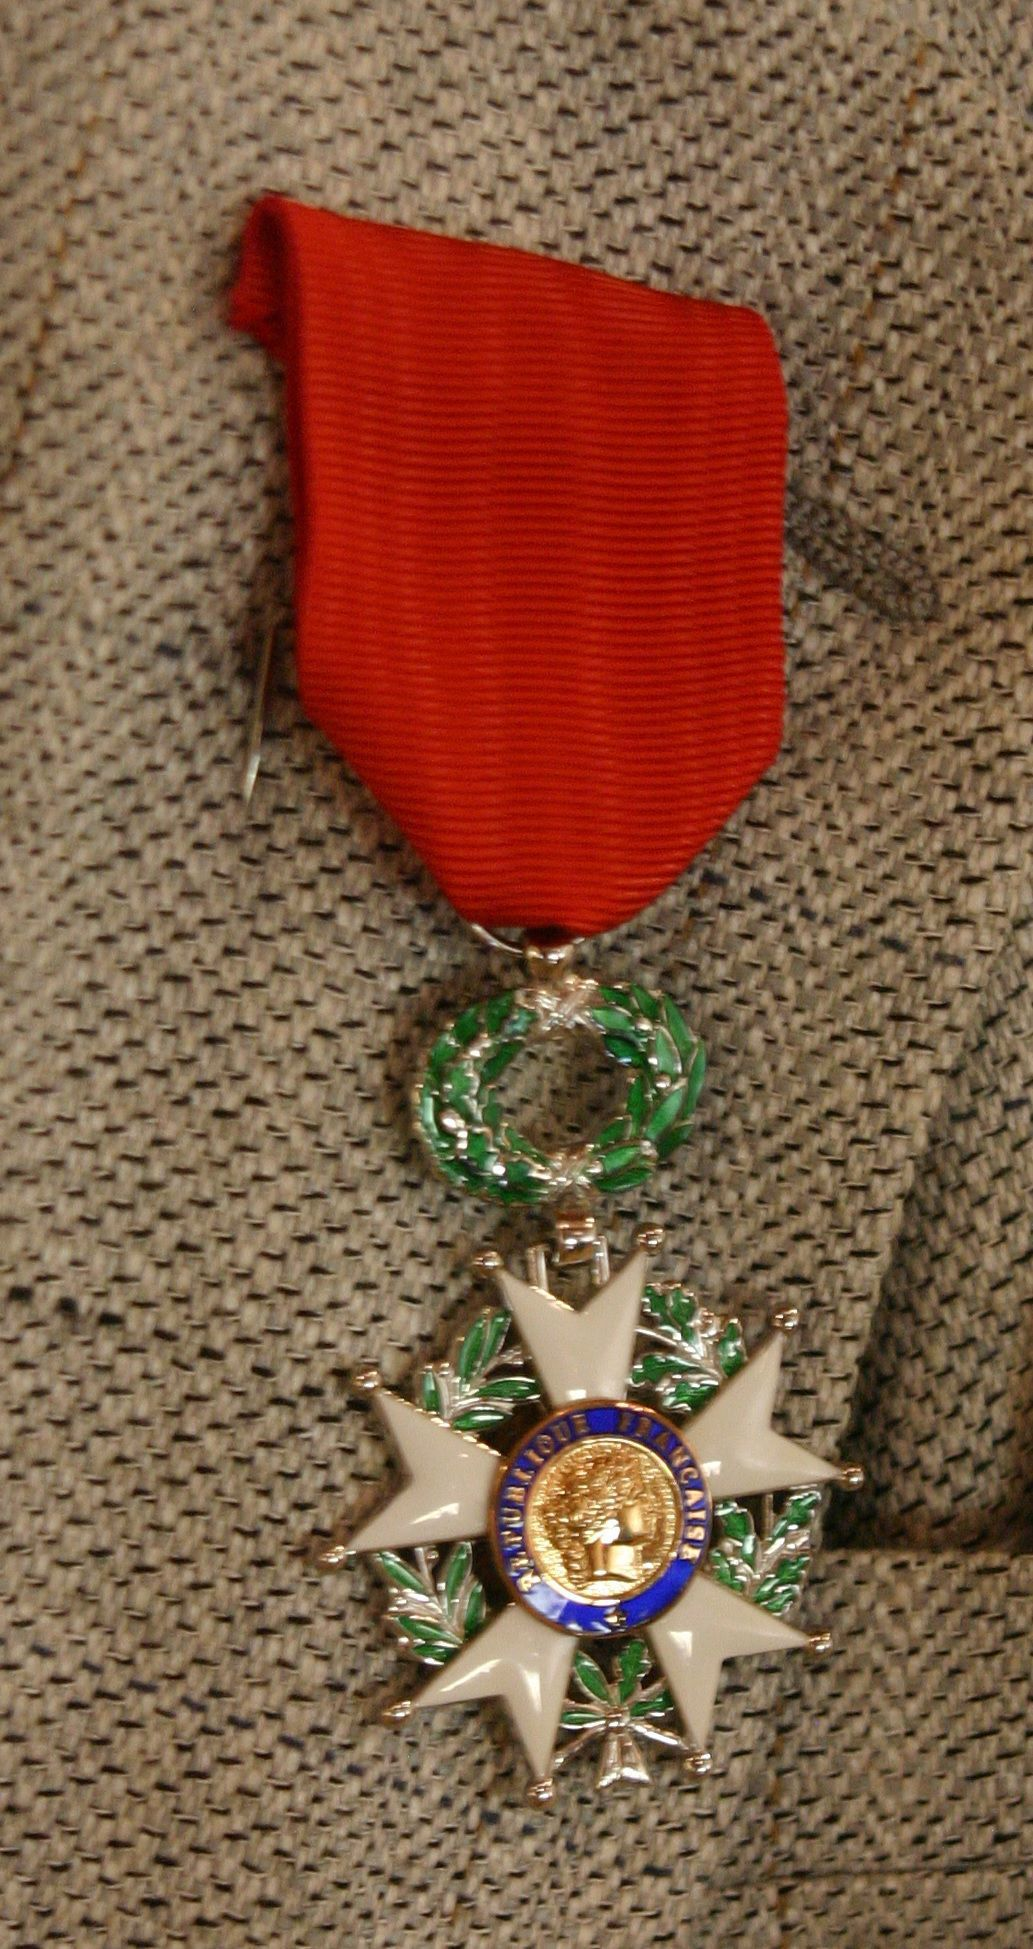 071818 Legion of Honor 02-the medal